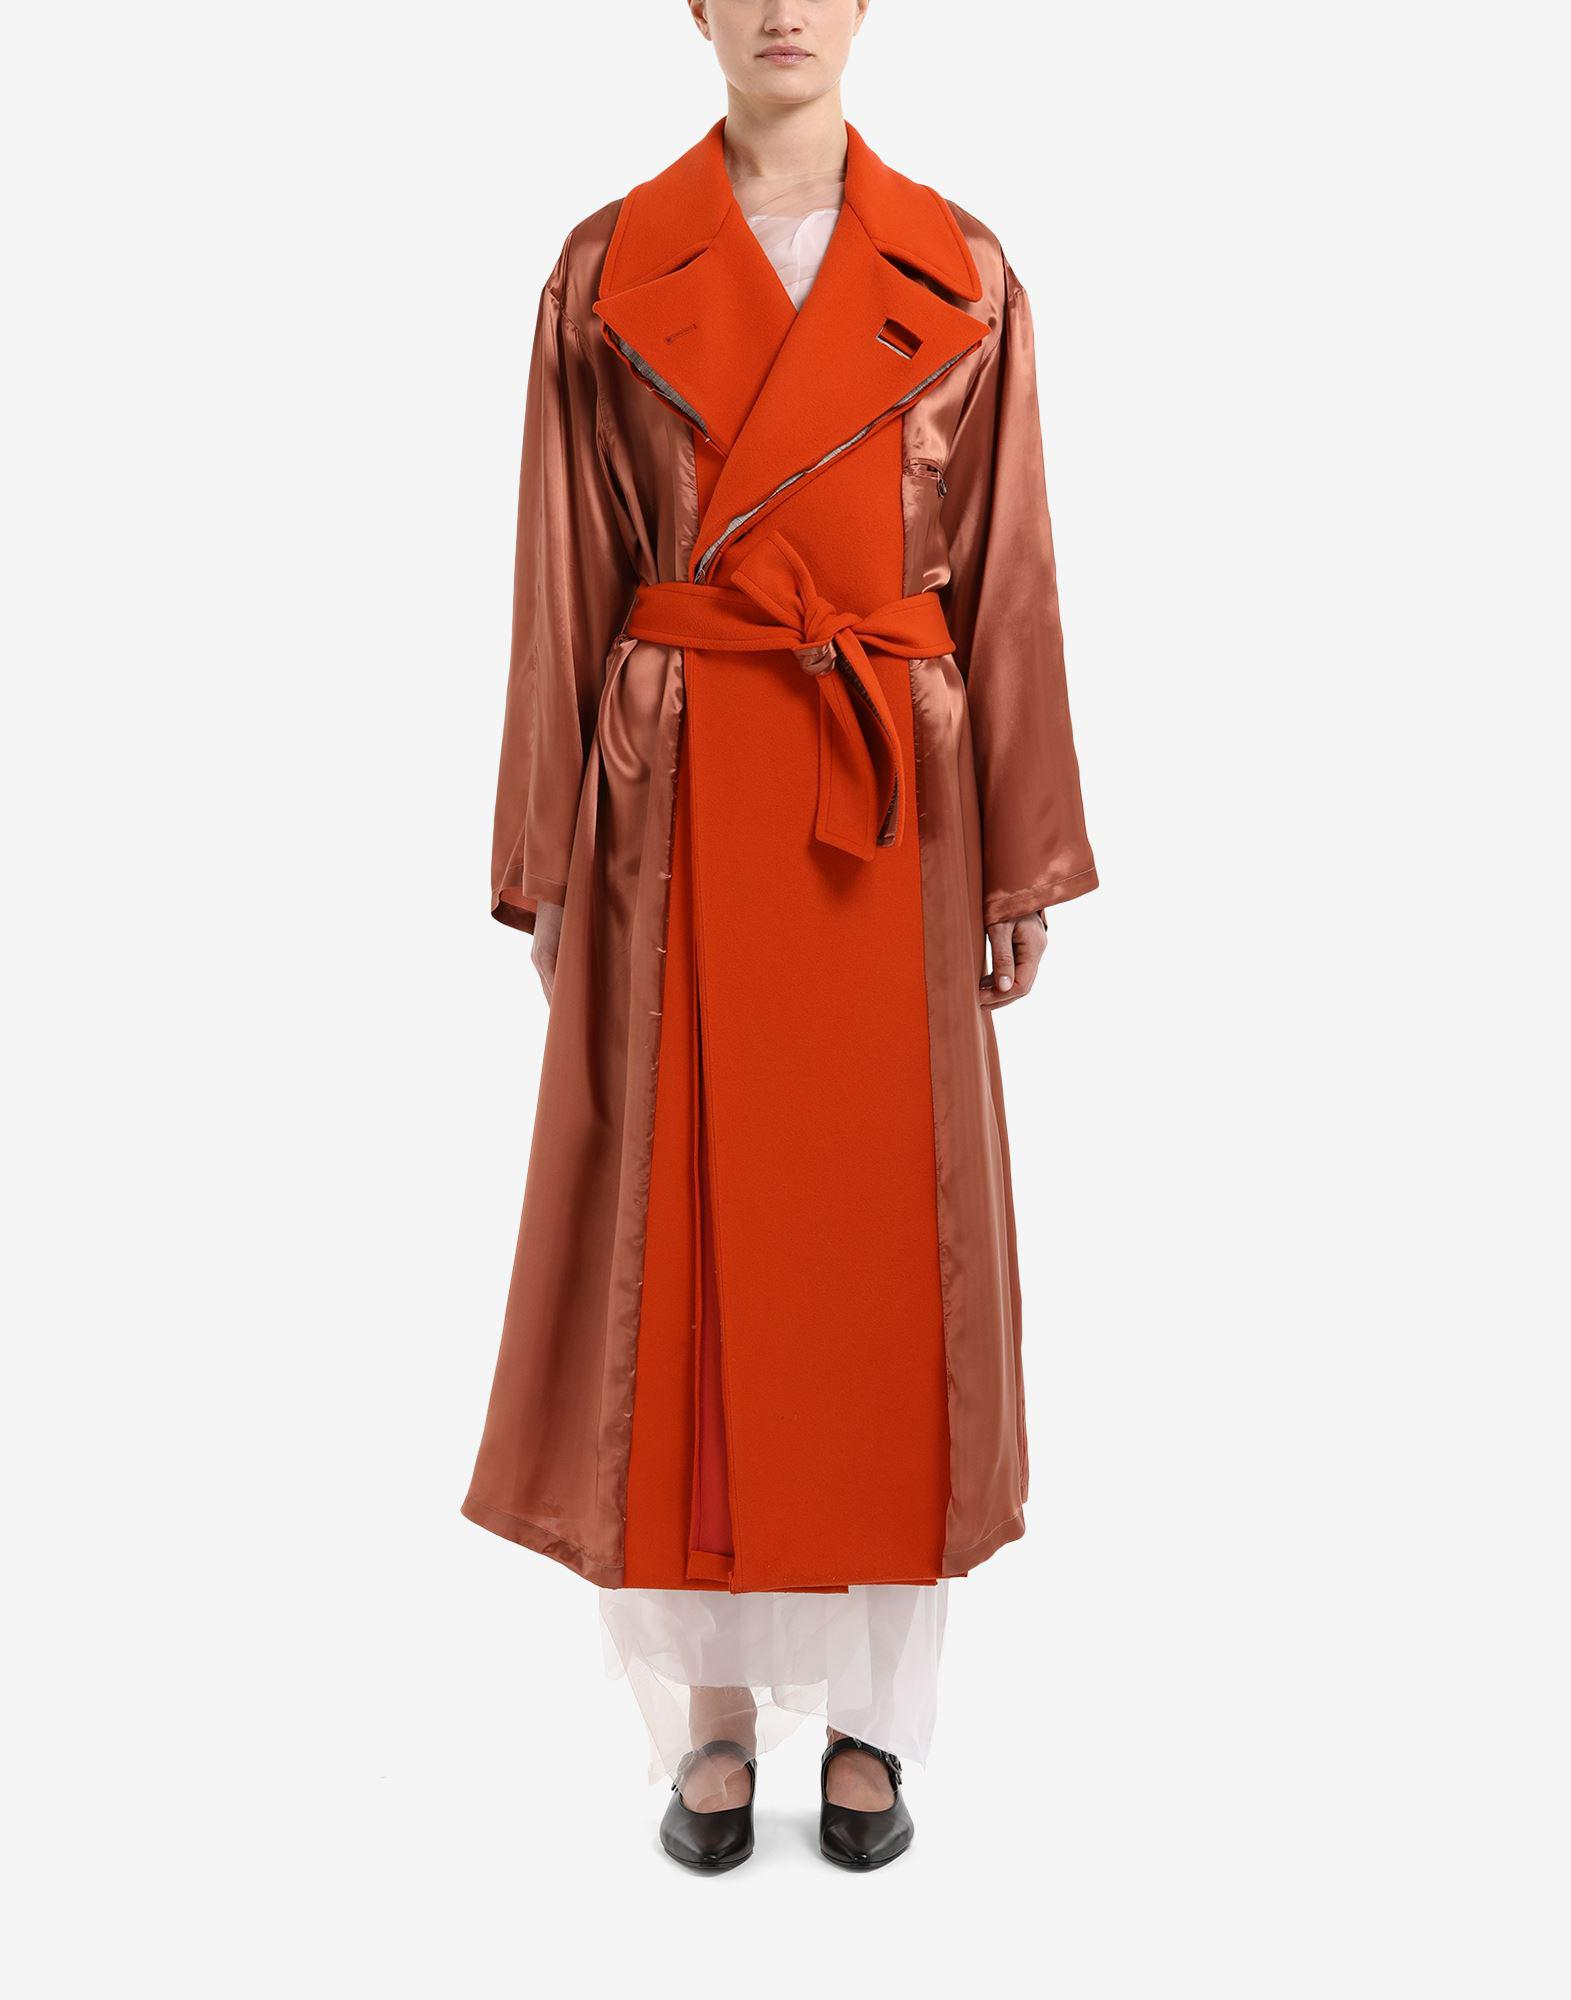 Anonymity of the lining trench coat